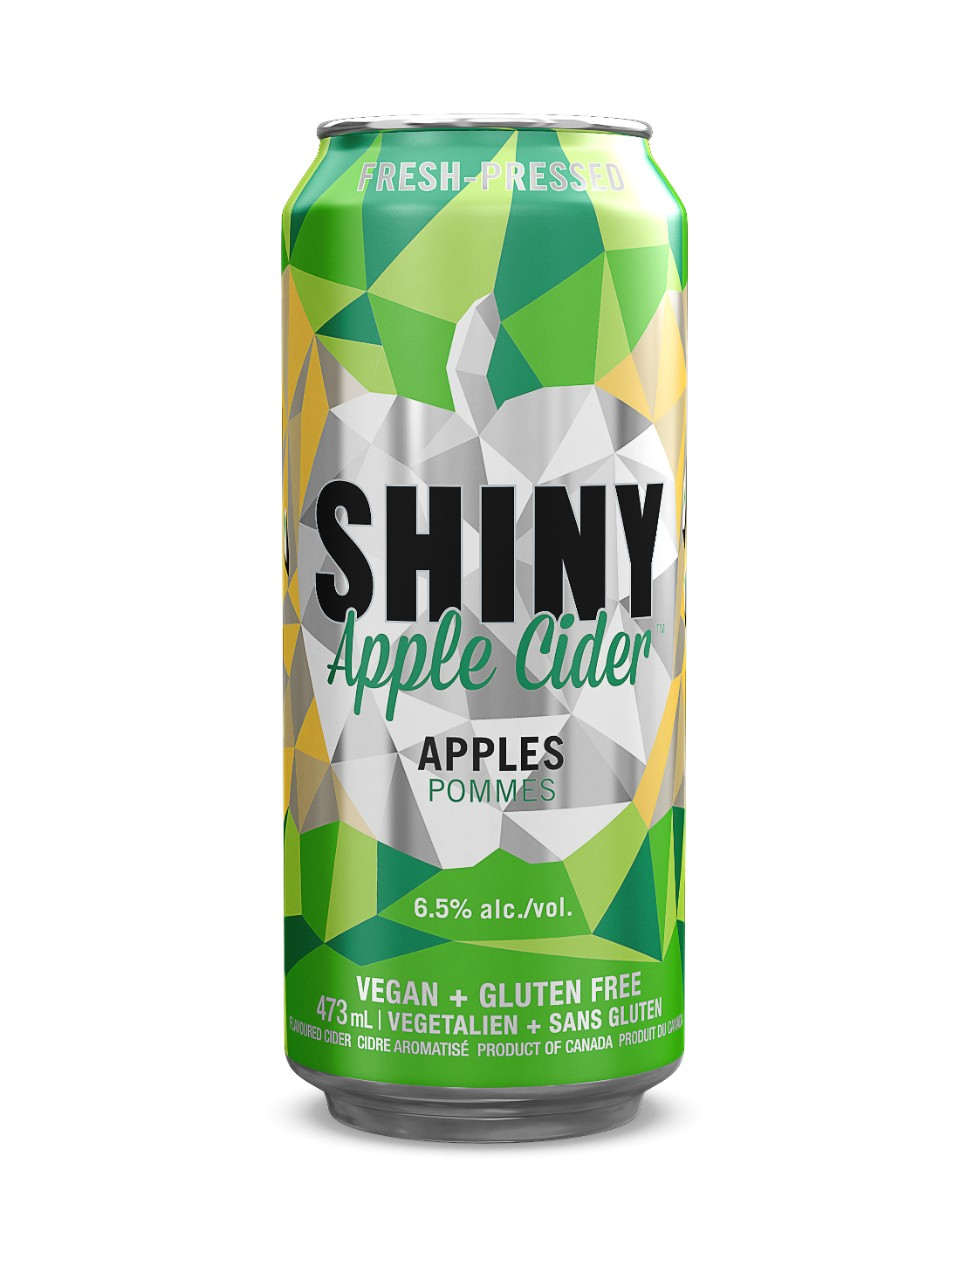 Shiny Apple Cider from LCBO